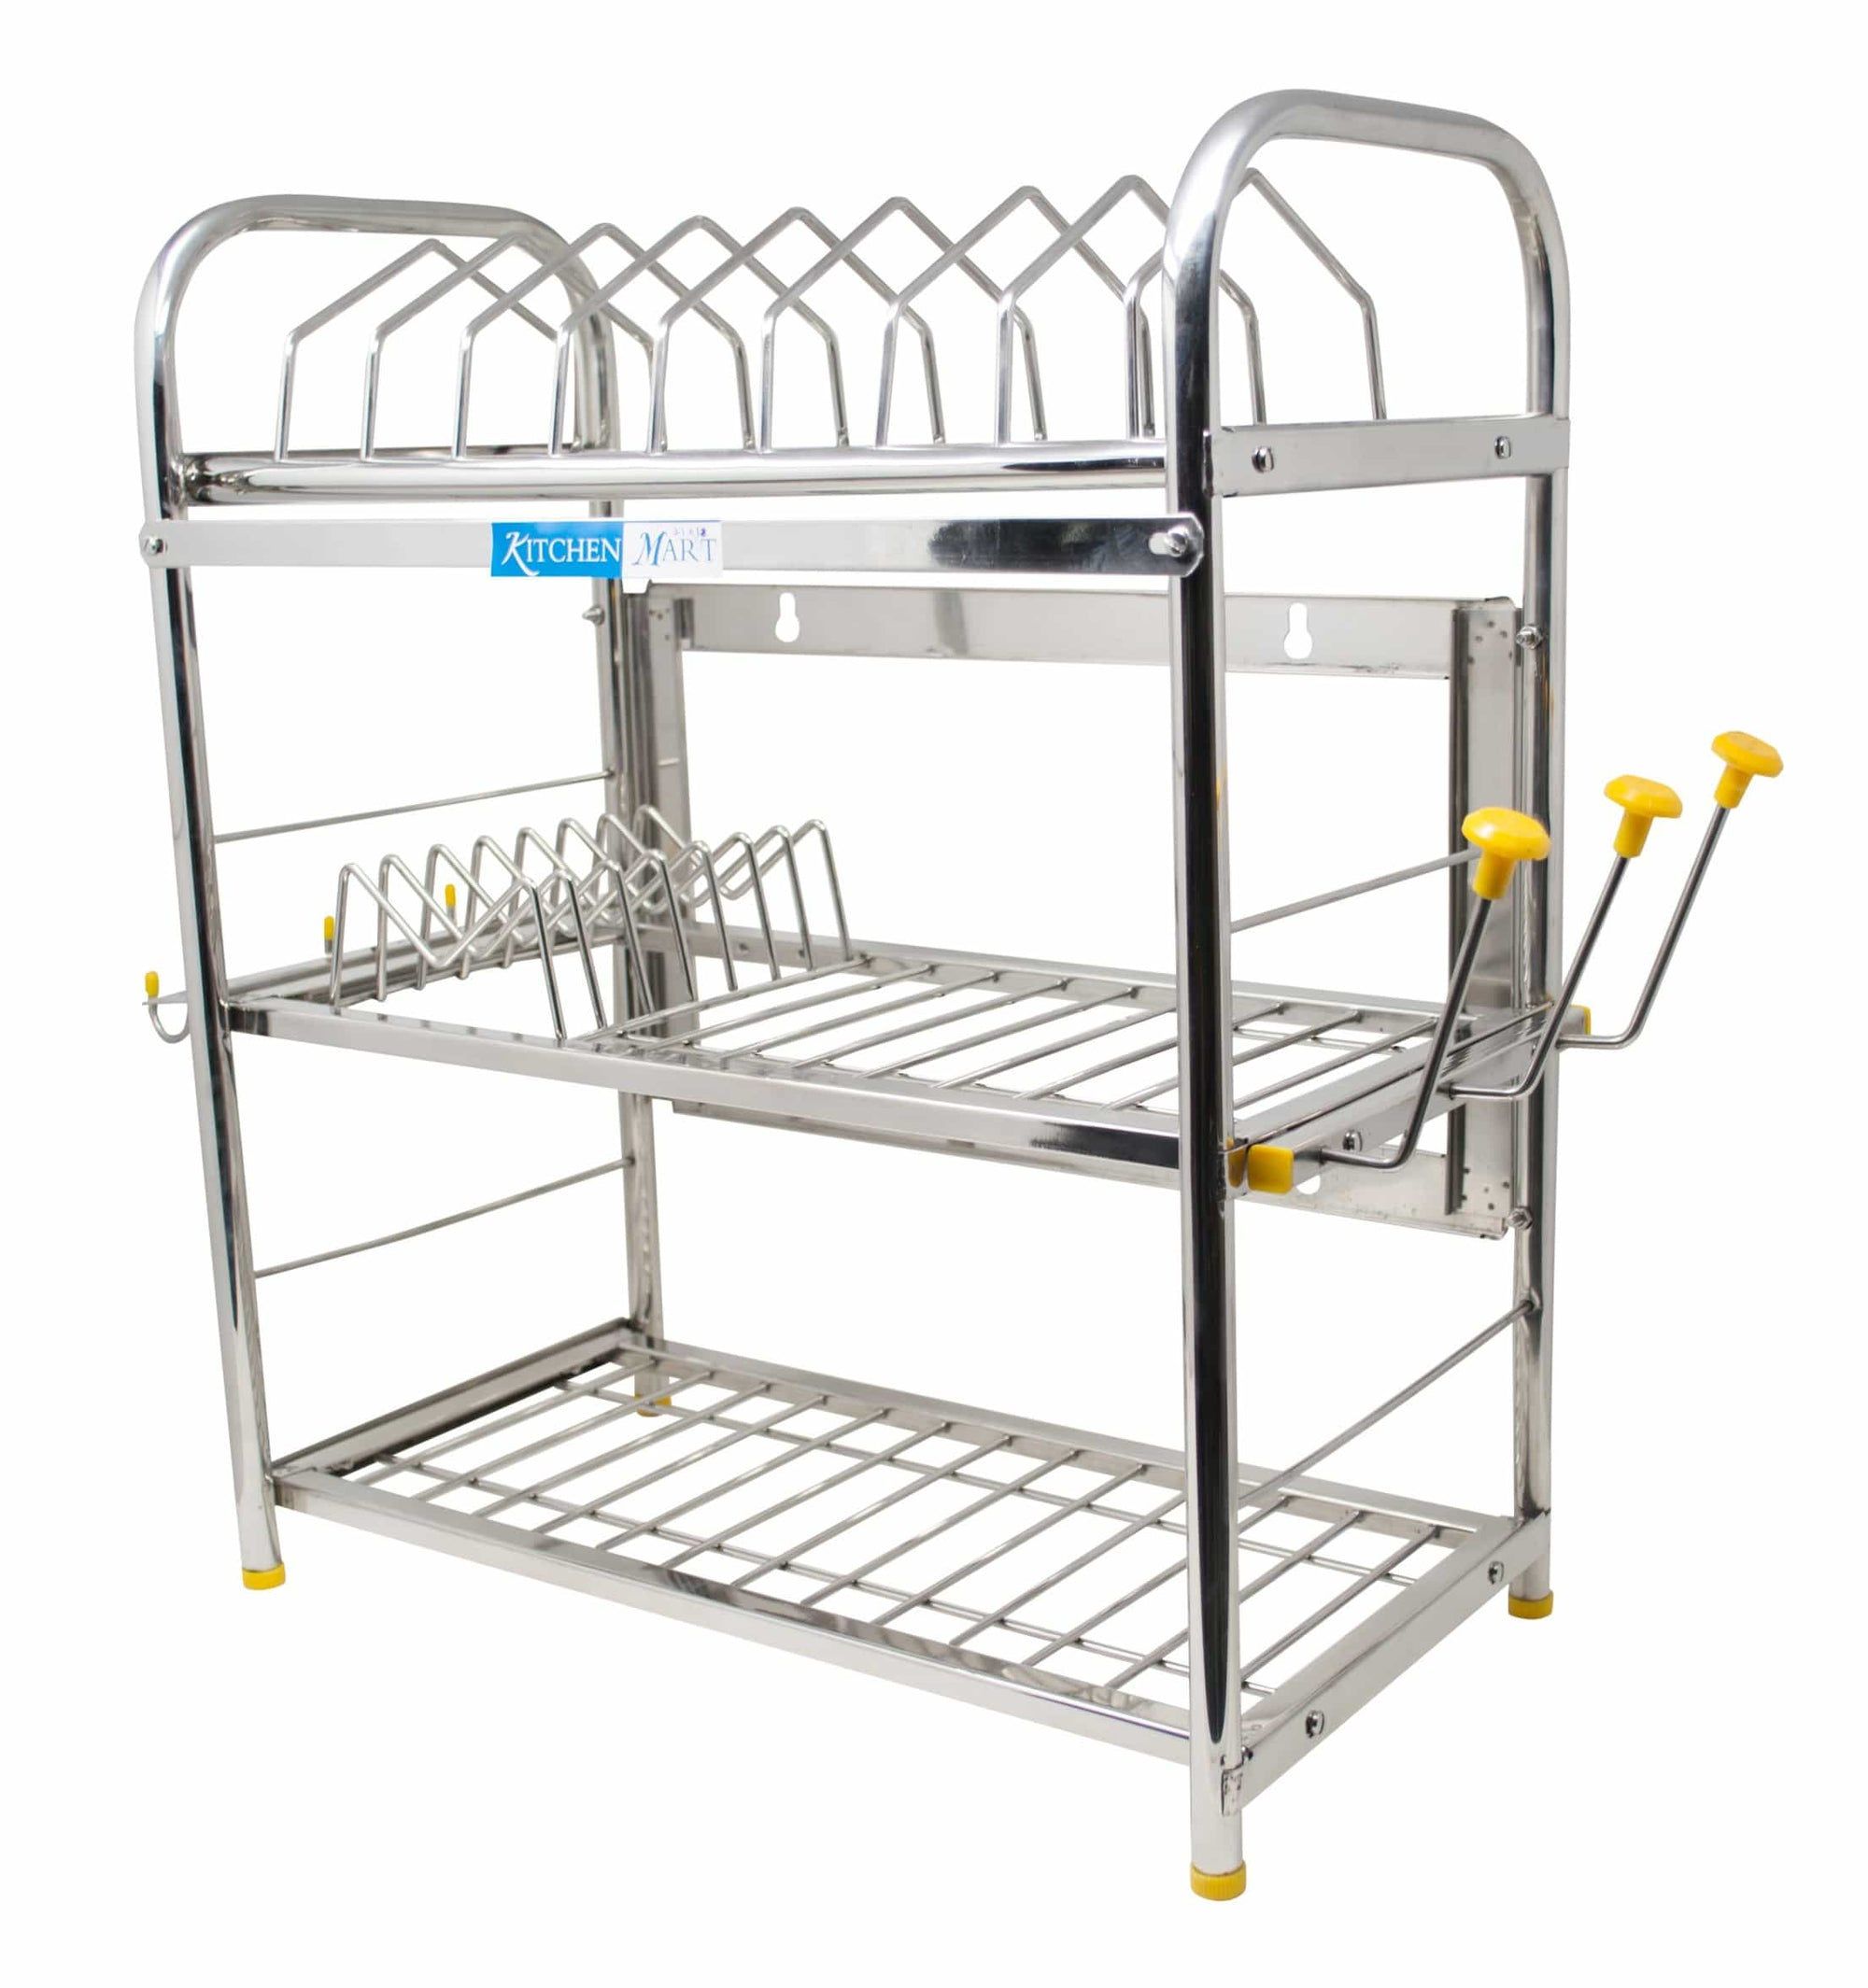 Kitchen Mart Stainless Steel Kitchen Rack (21 x 18 inch) - KITCHEN MART